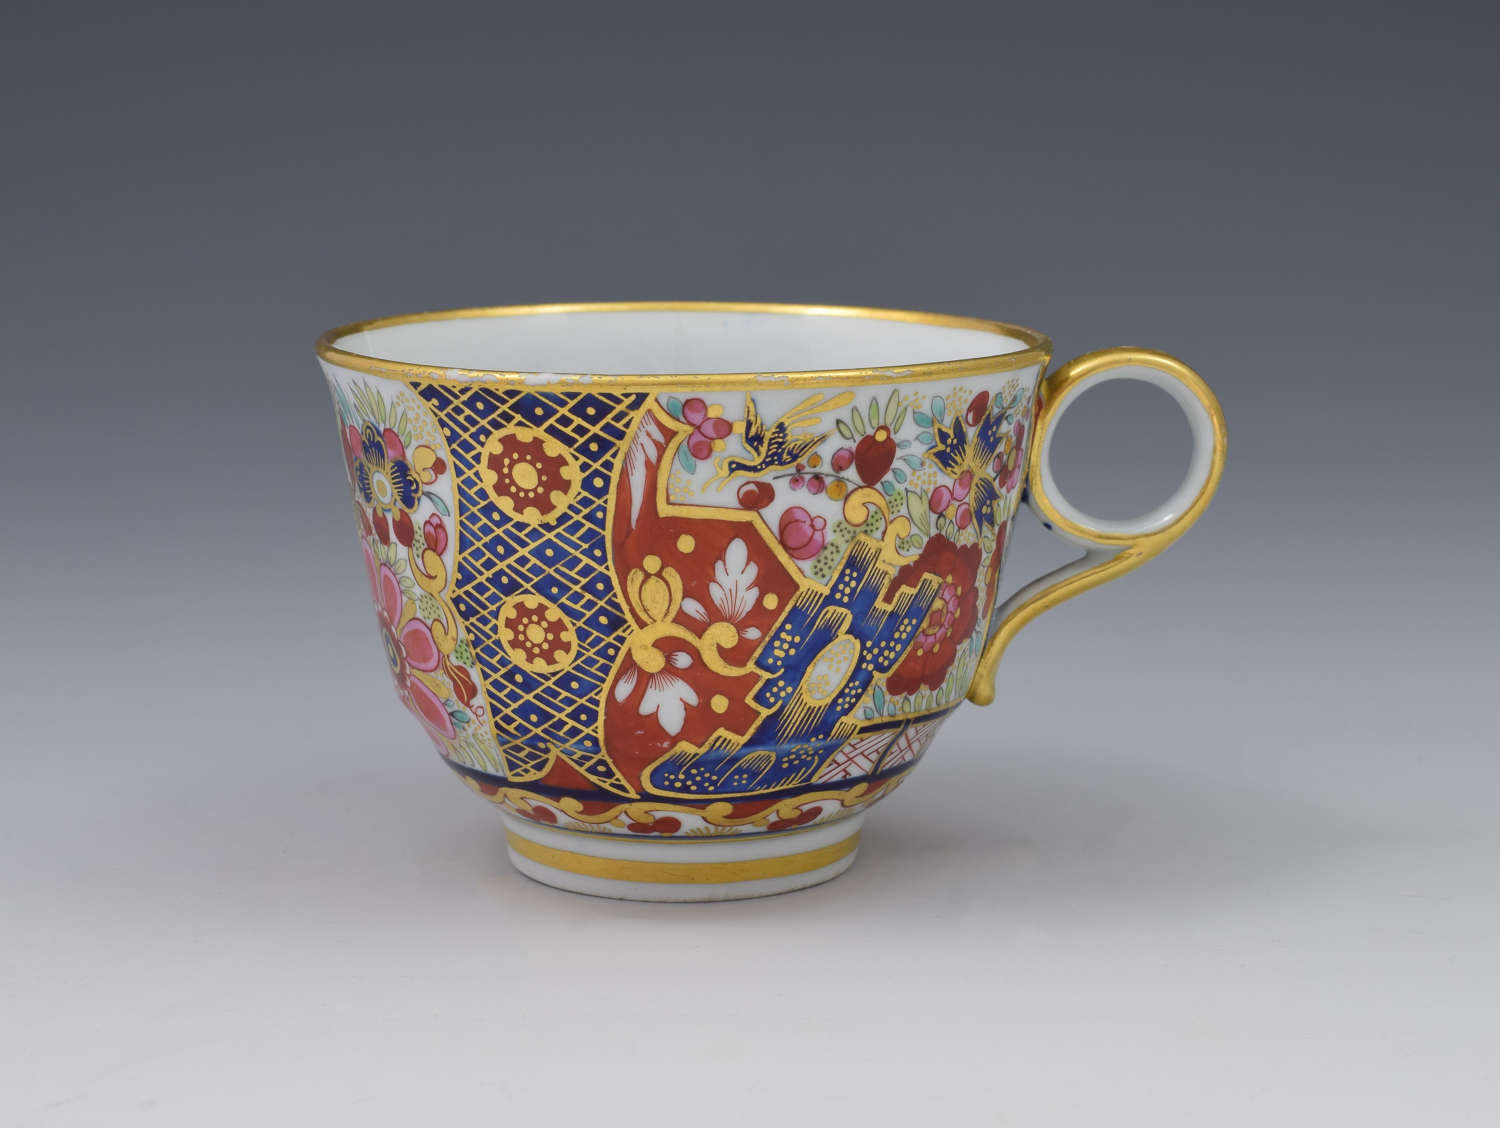 Barr Flight & Barr Period Worcester Imari Japan Tea Cup C.1810